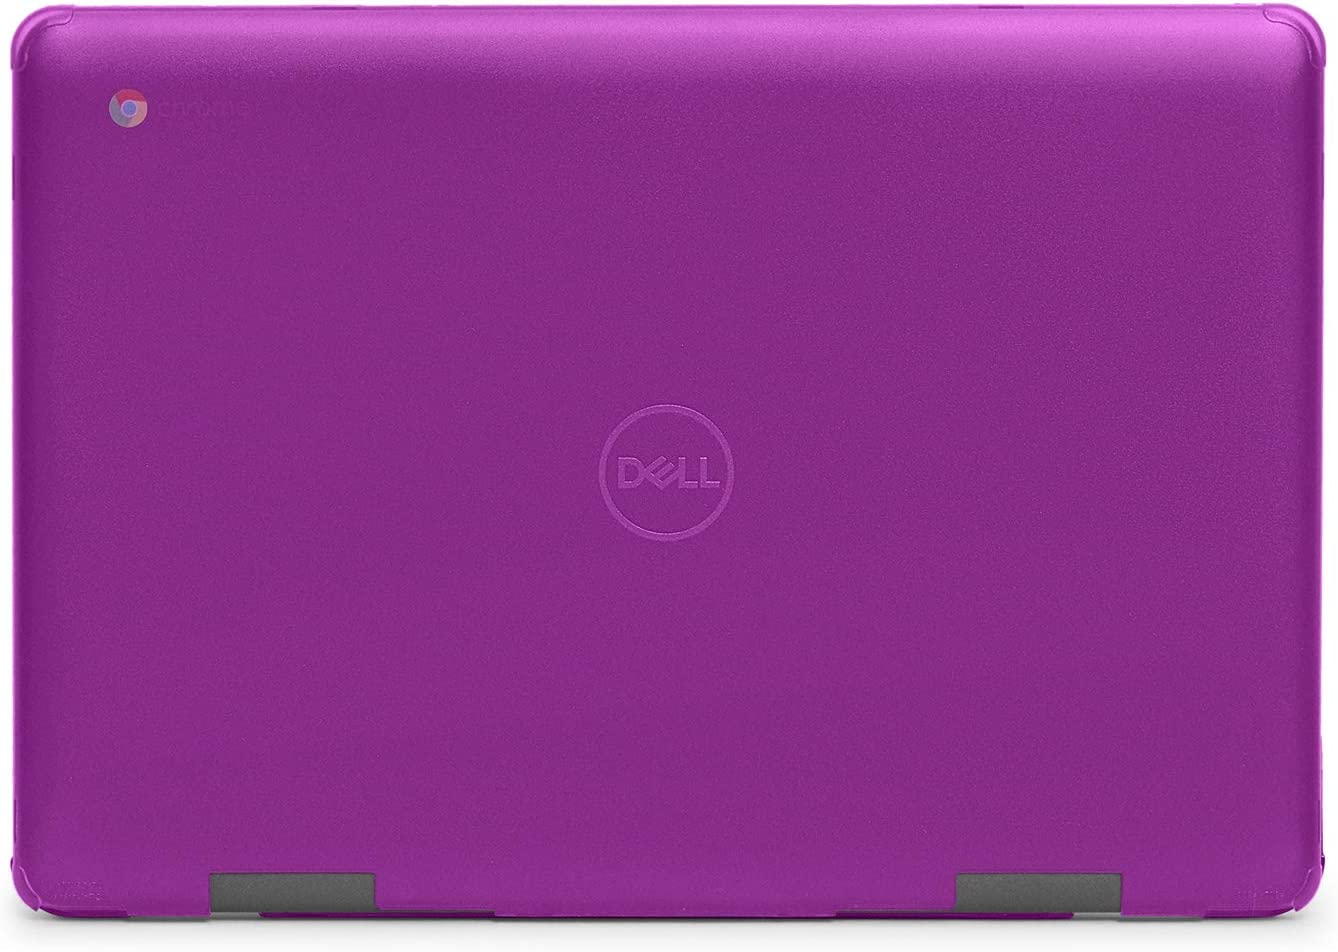 """mCover Hard Shell Case for 2019 14"""" Dell Chromebook 14 3400 (180-degree Hinge) Laptop (NOT Compatible with C11 3181/3100 2in1, 210/3120/3180/3189/5190 Series) (Purple)"""